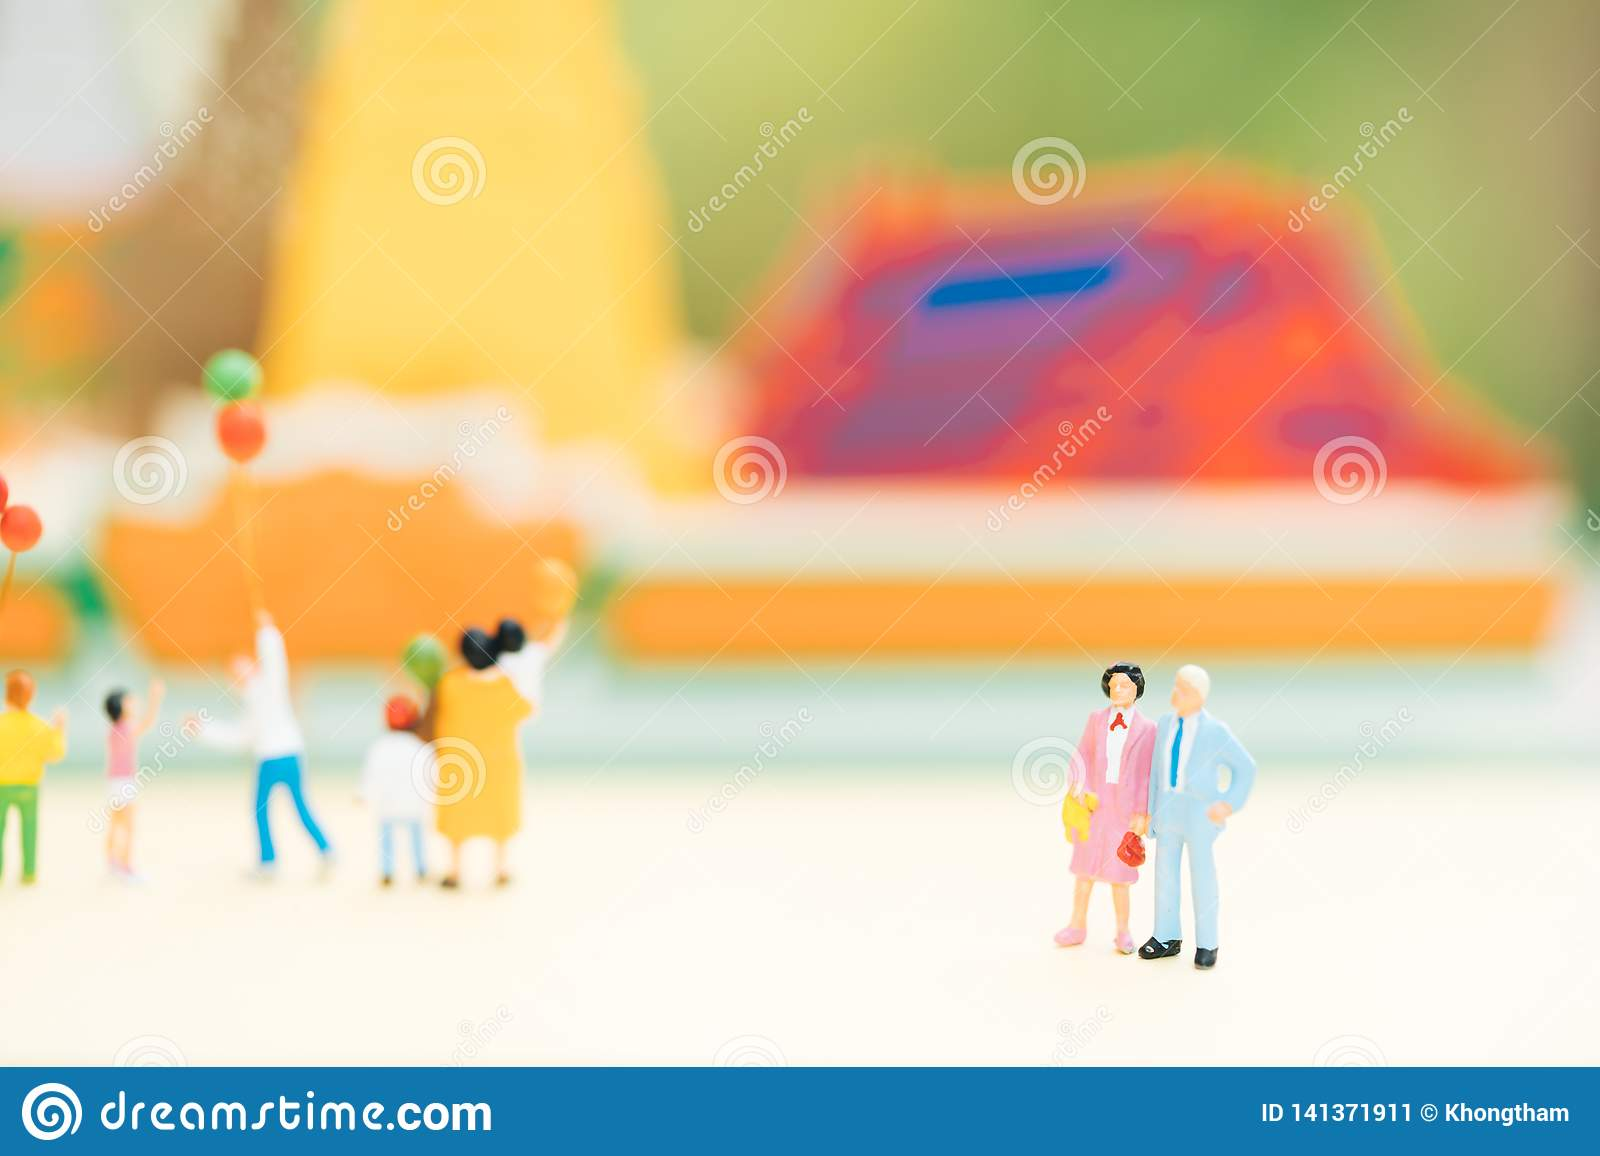 Miniature people: Old couple figure standing in front of temple with others tourist